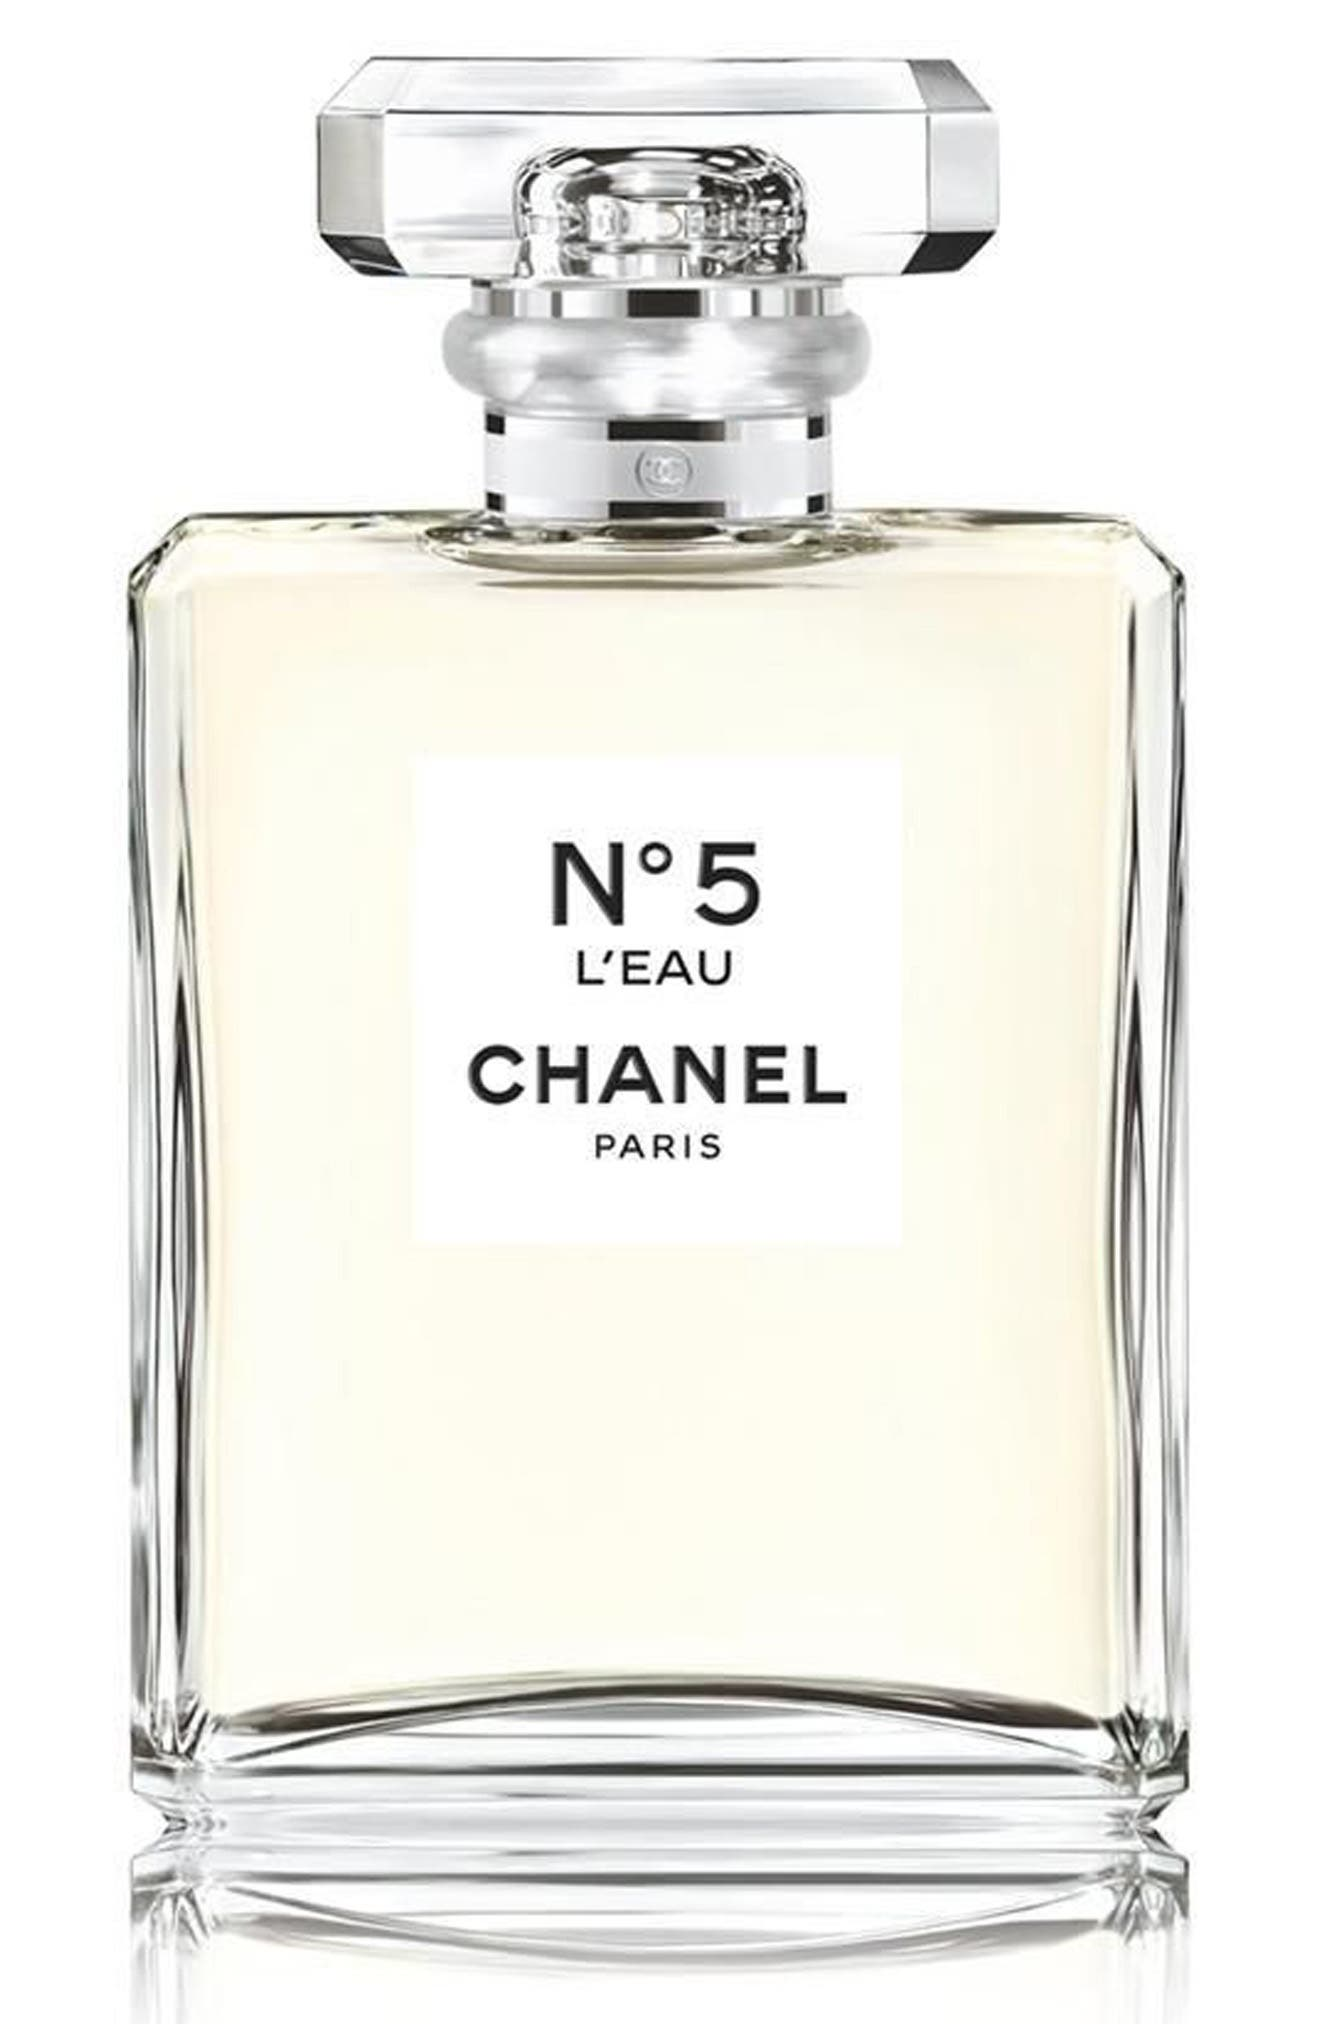 CHANEL N°5 L'EAU 